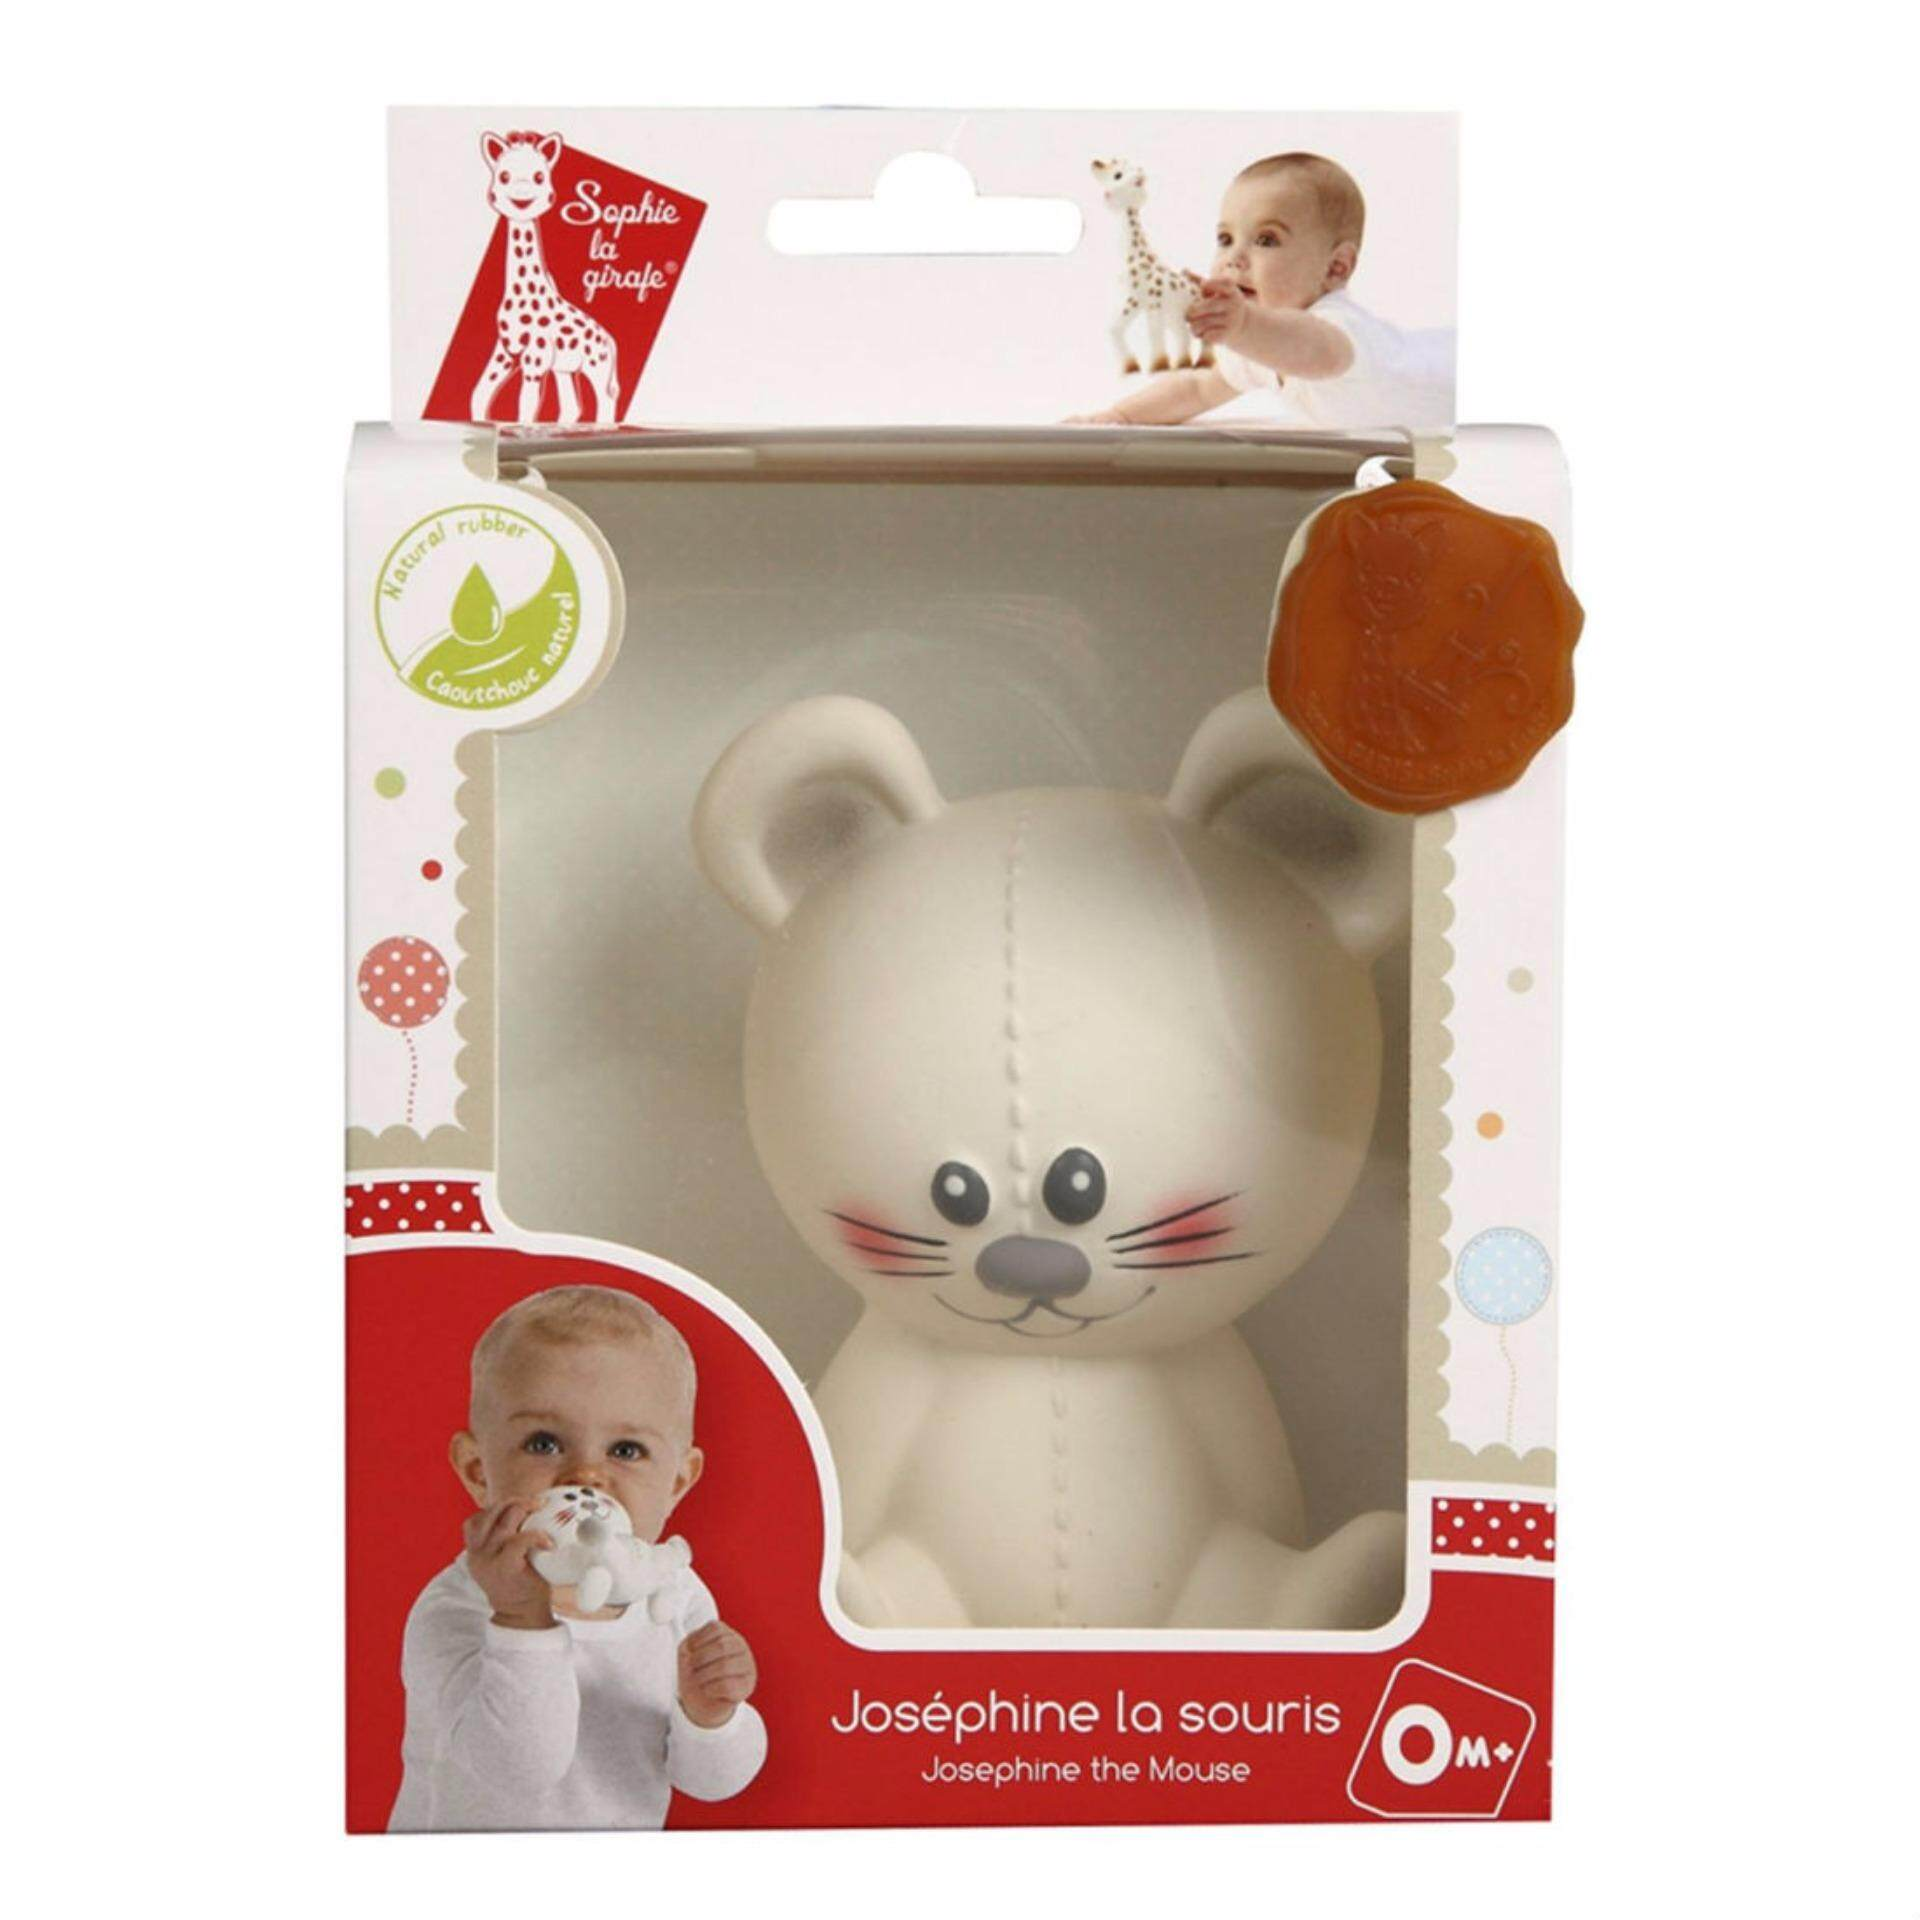 [FRANCE - SOPHIE LA GIRAFE] Josphine the Mouse Teether (VULLI)